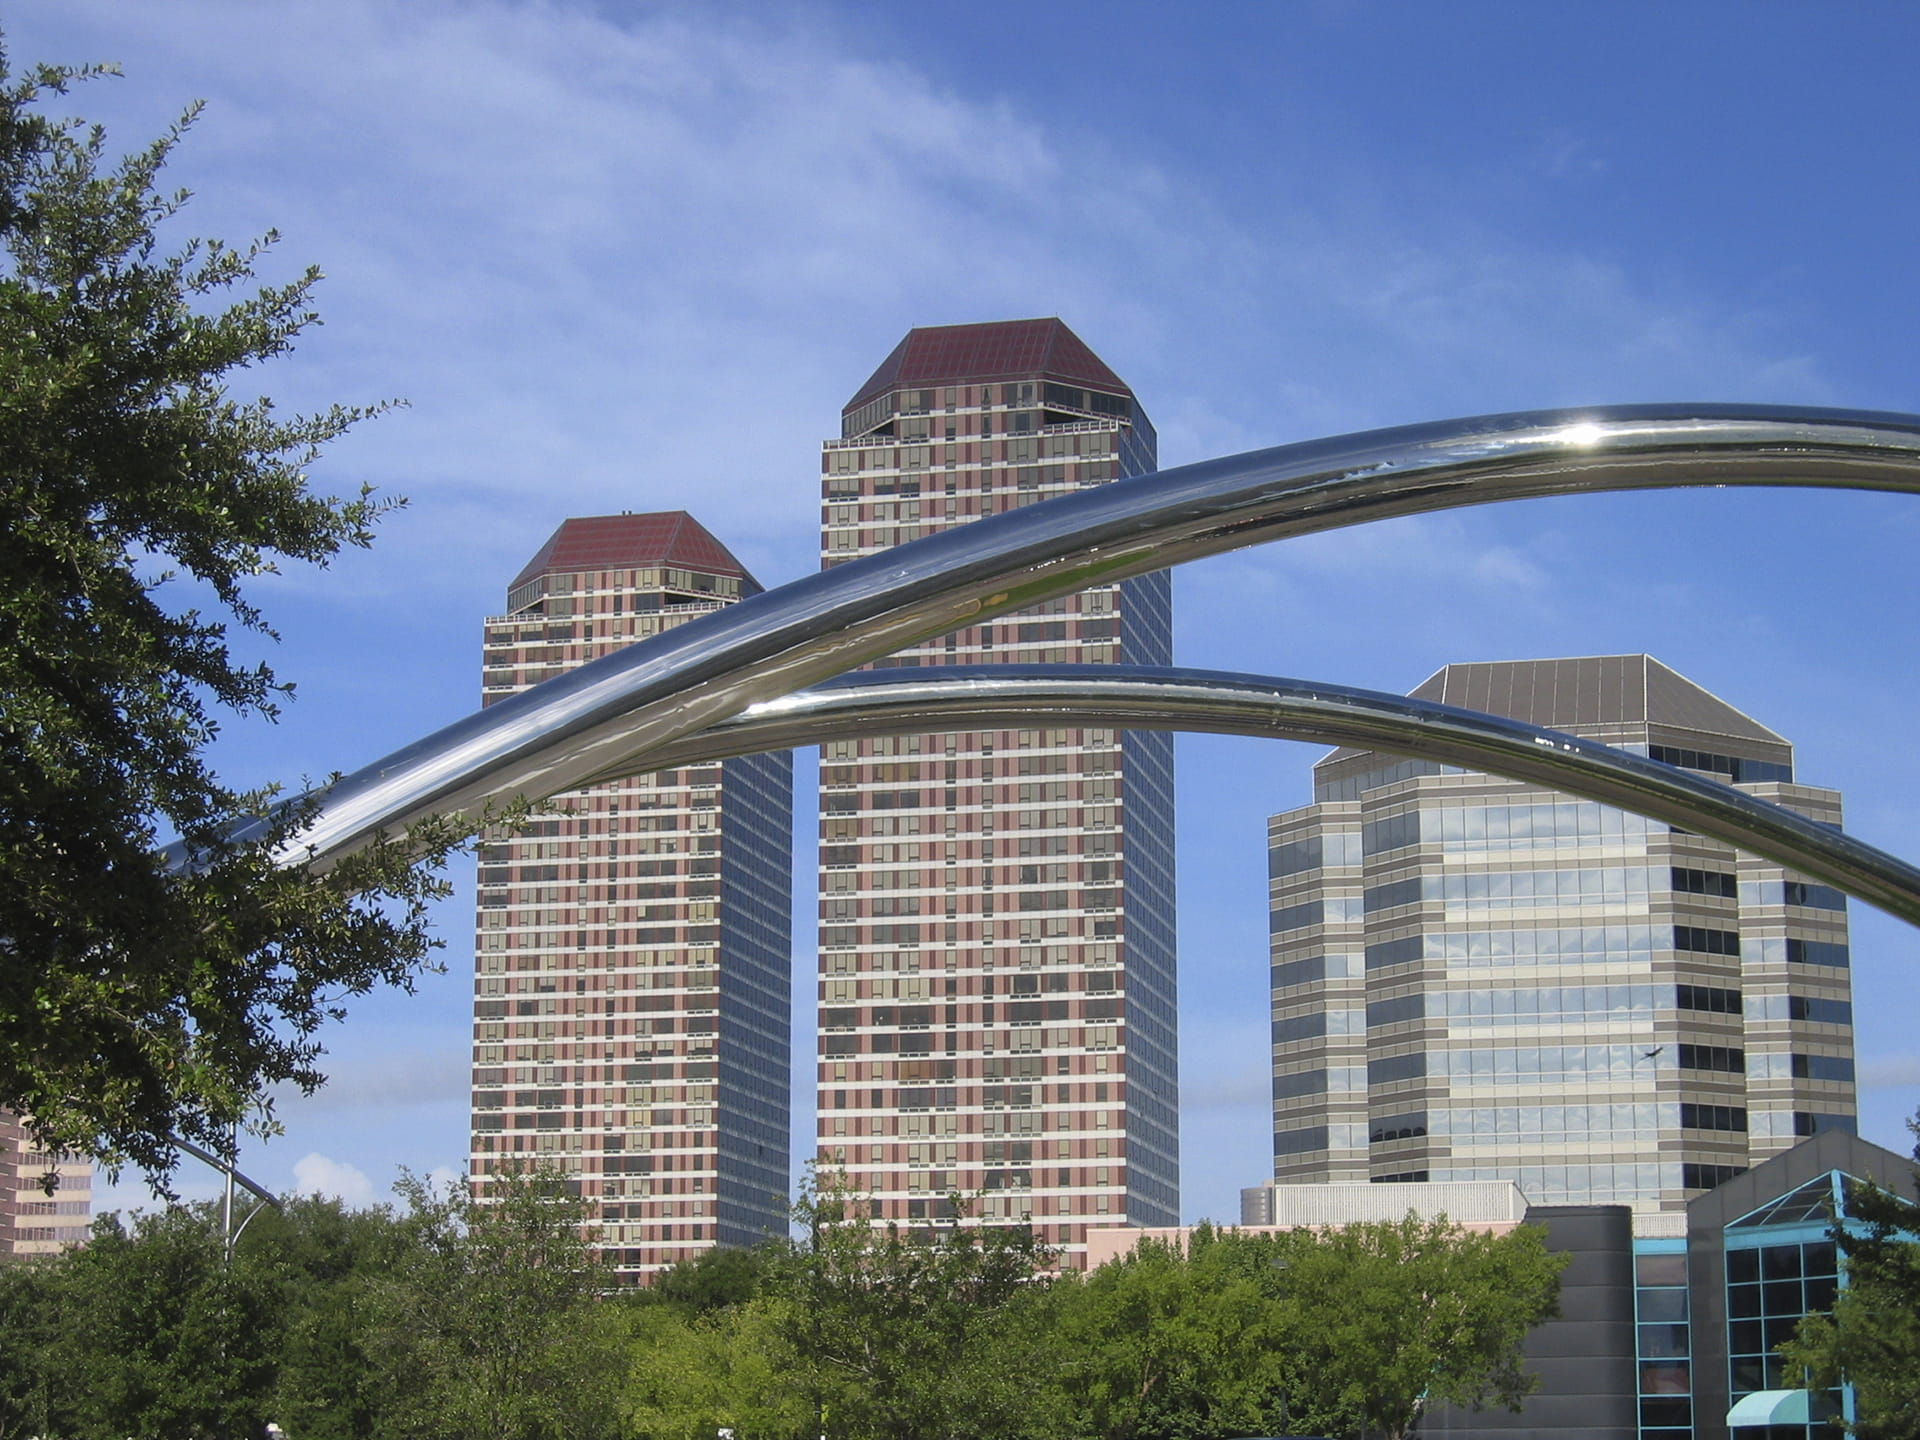 Houston Arches, USA